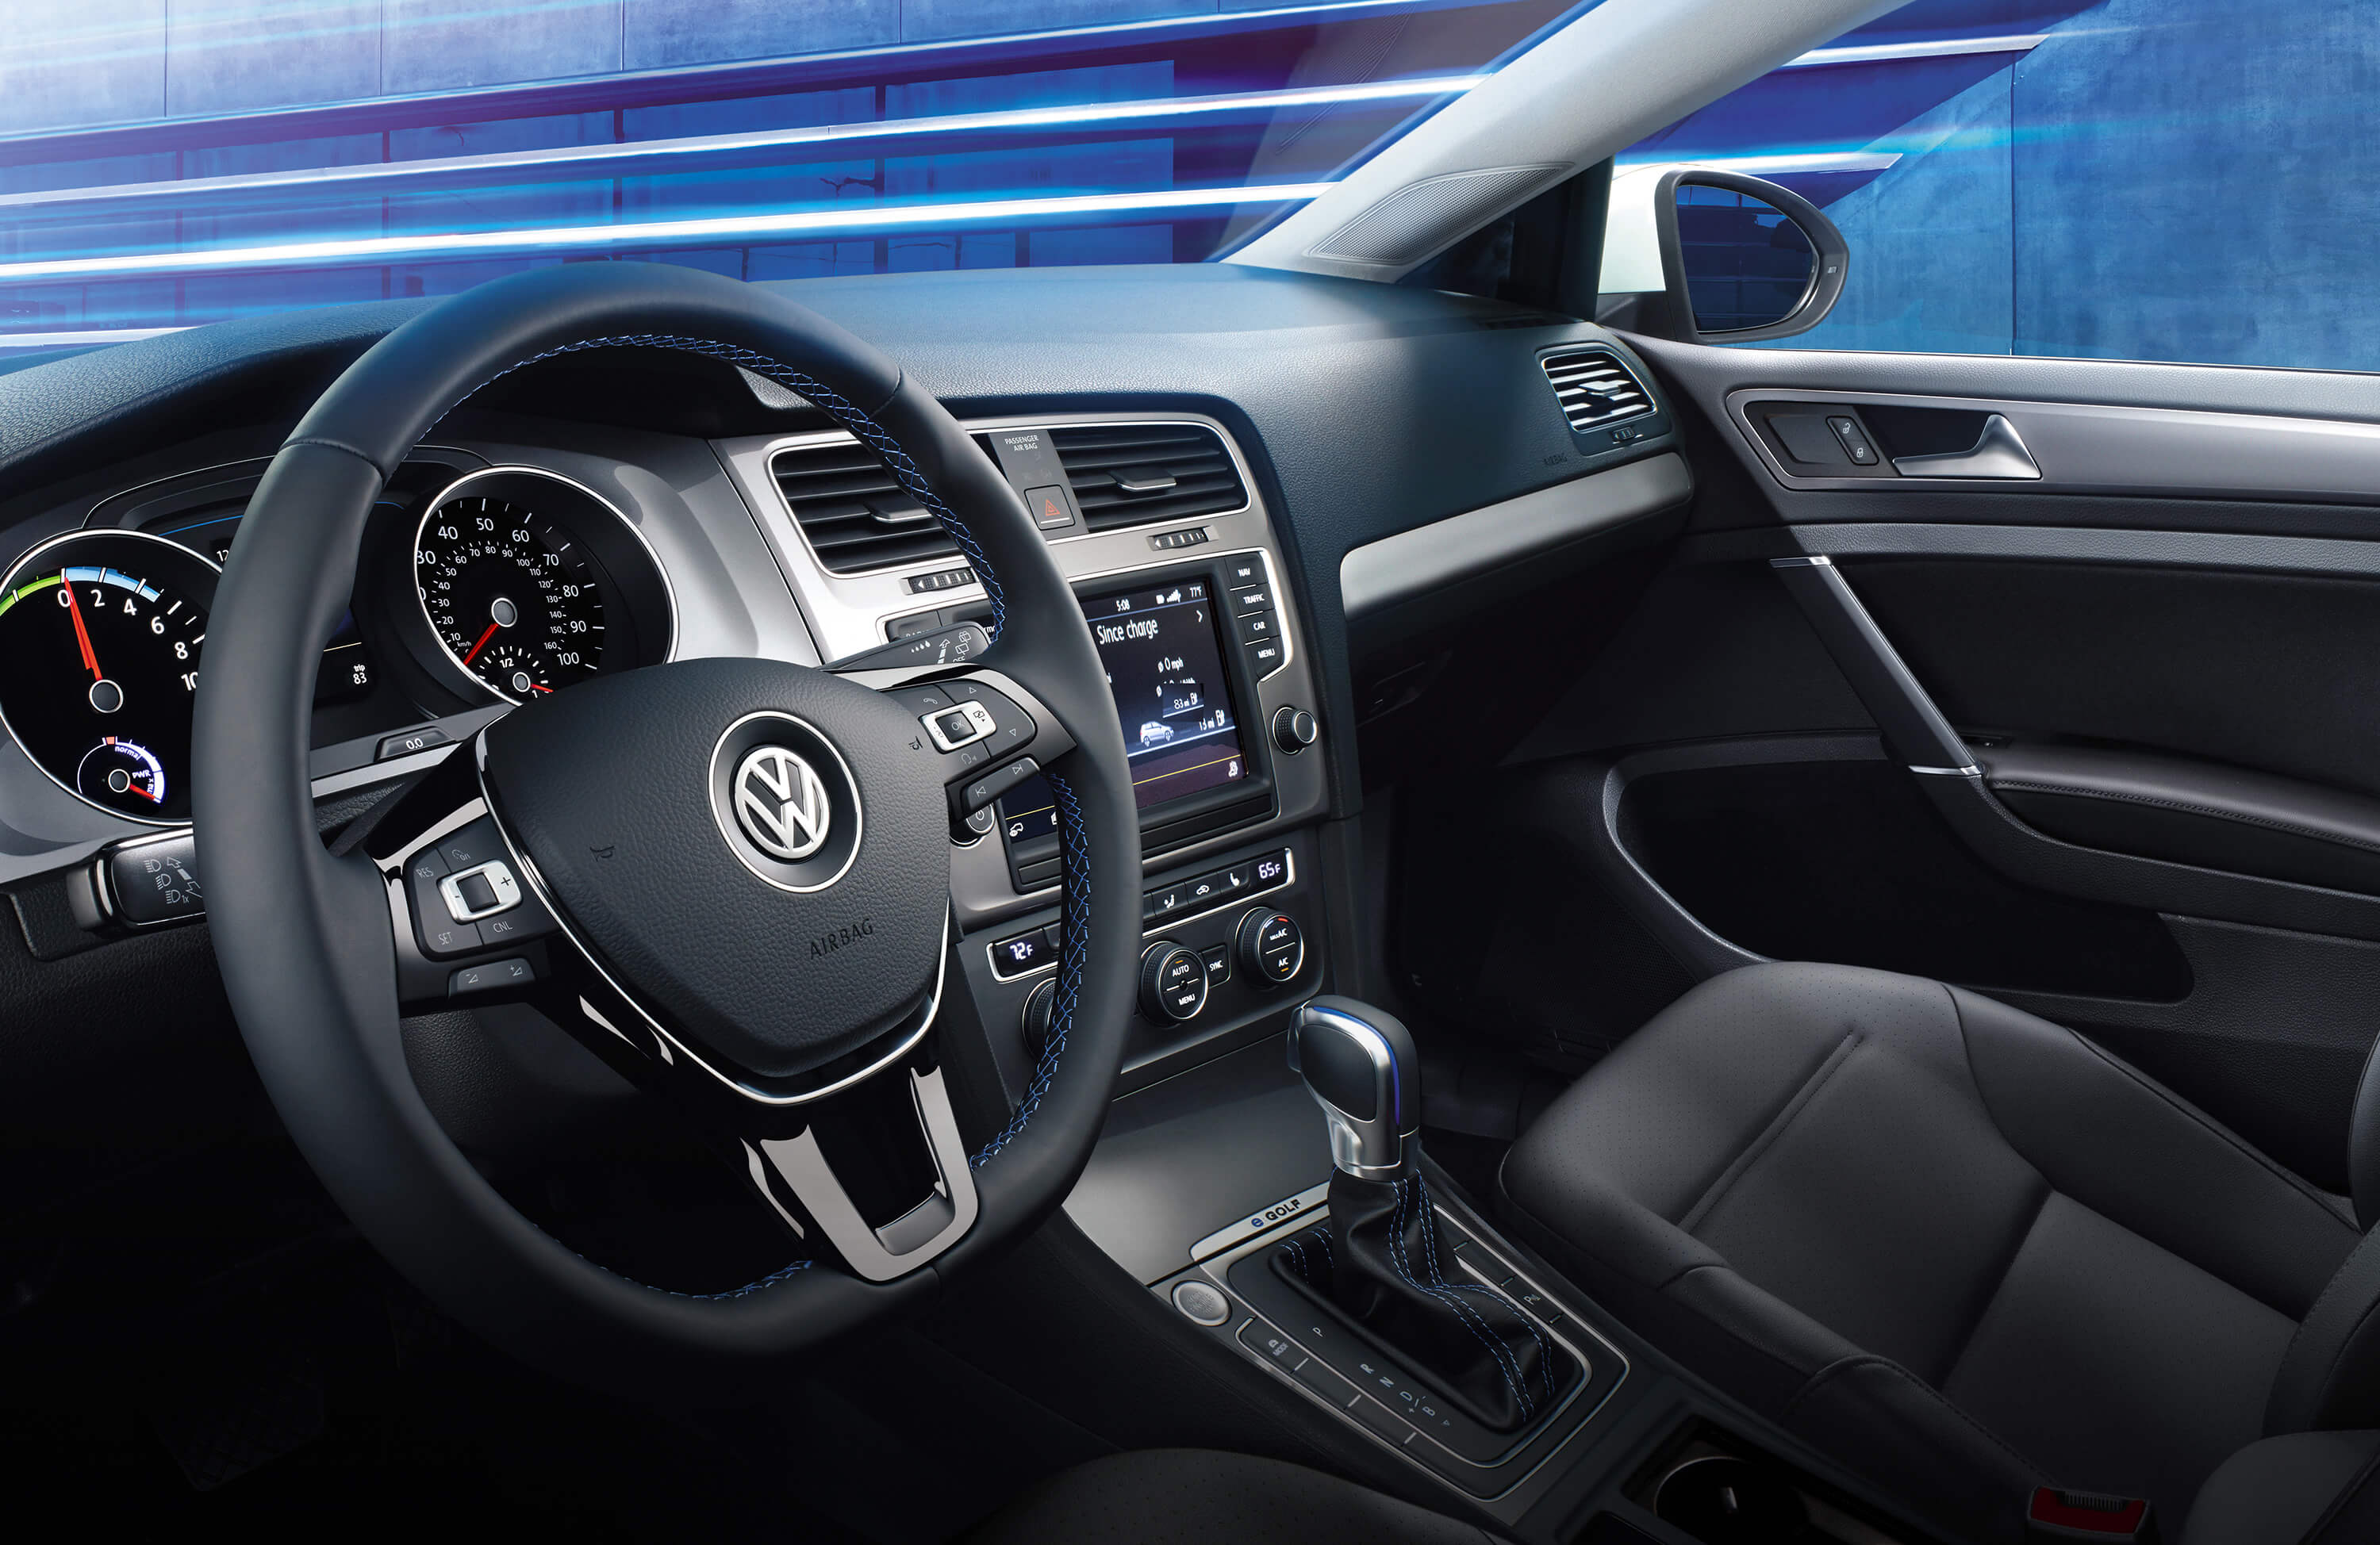 2016 Volkswagen E Golf Cockpit Interior (Photo 3 of 11)